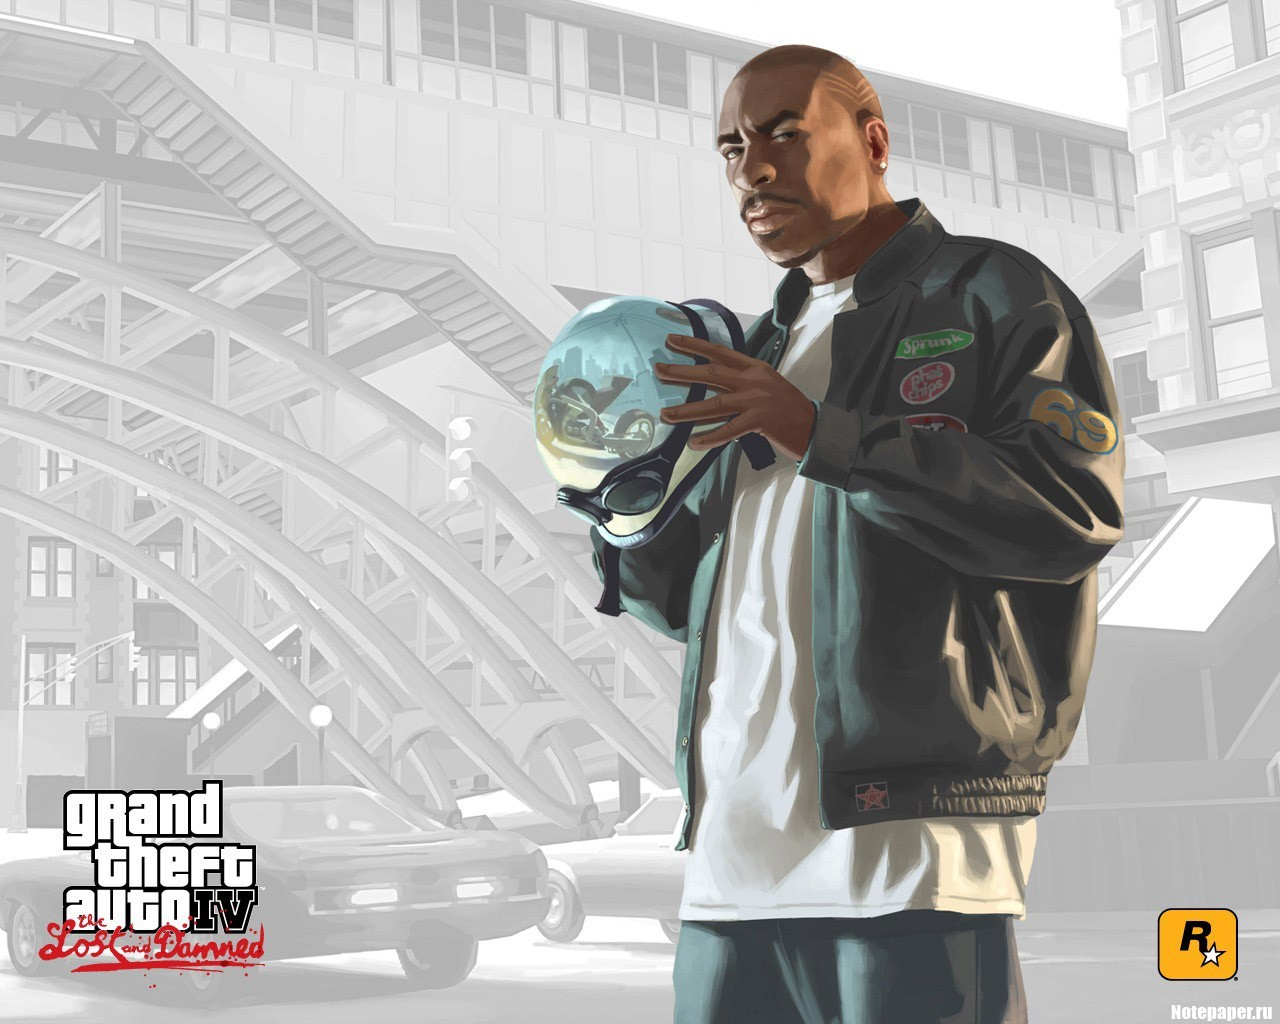 grand theft auto gta HD Wallpaper